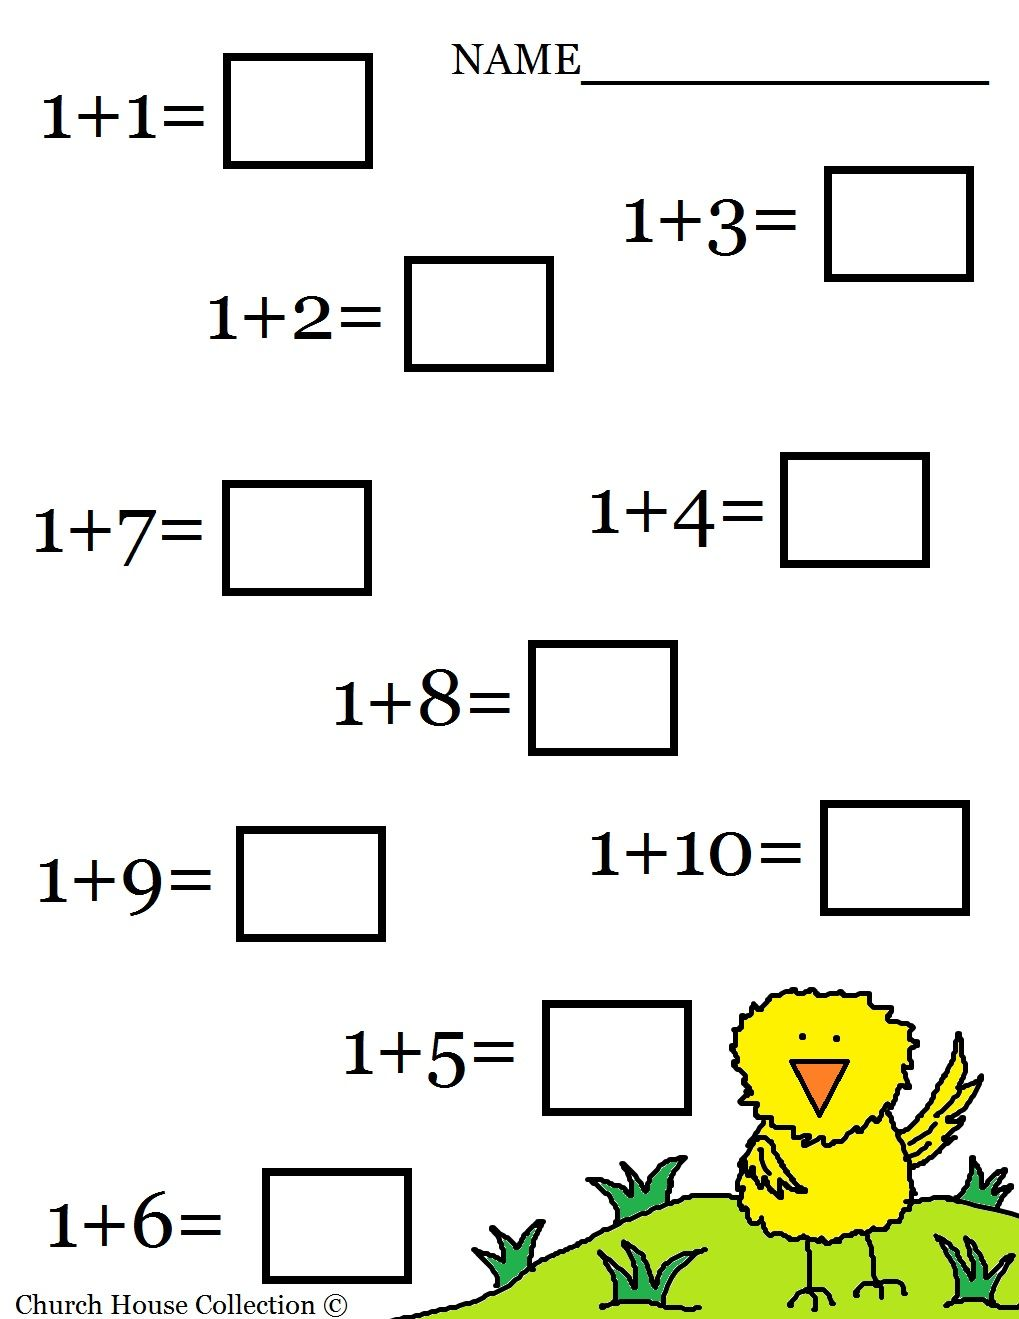 Proatmealus  Unique  Images About Worksheets  Math On Pinterest  Math Sheets  With Engaging  Images About Worksheets  Math On Pinterest  Math Sheets Math Worksheets For Kindergarten And Simple Addition With Divine Tessellation Patterns Worksheets Also Sentence Exercises Worksheets In Addition Worksheets On Verb Tenses And English For Grade  Worksheets As Well As Free Comprehension Worksheets For Nd Grade Additionally Roy G Biv Worksheet From Pinterestcom With Proatmealus  Engaging  Images About Worksheets  Math On Pinterest  Math Sheets  With Divine  Images About Worksheets  Math On Pinterest  Math Sheets Math Worksheets For Kindergarten And Simple Addition And Unique Tessellation Patterns Worksheets Also Sentence Exercises Worksheets In Addition Worksheets On Verb Tenses From Pinterestcom